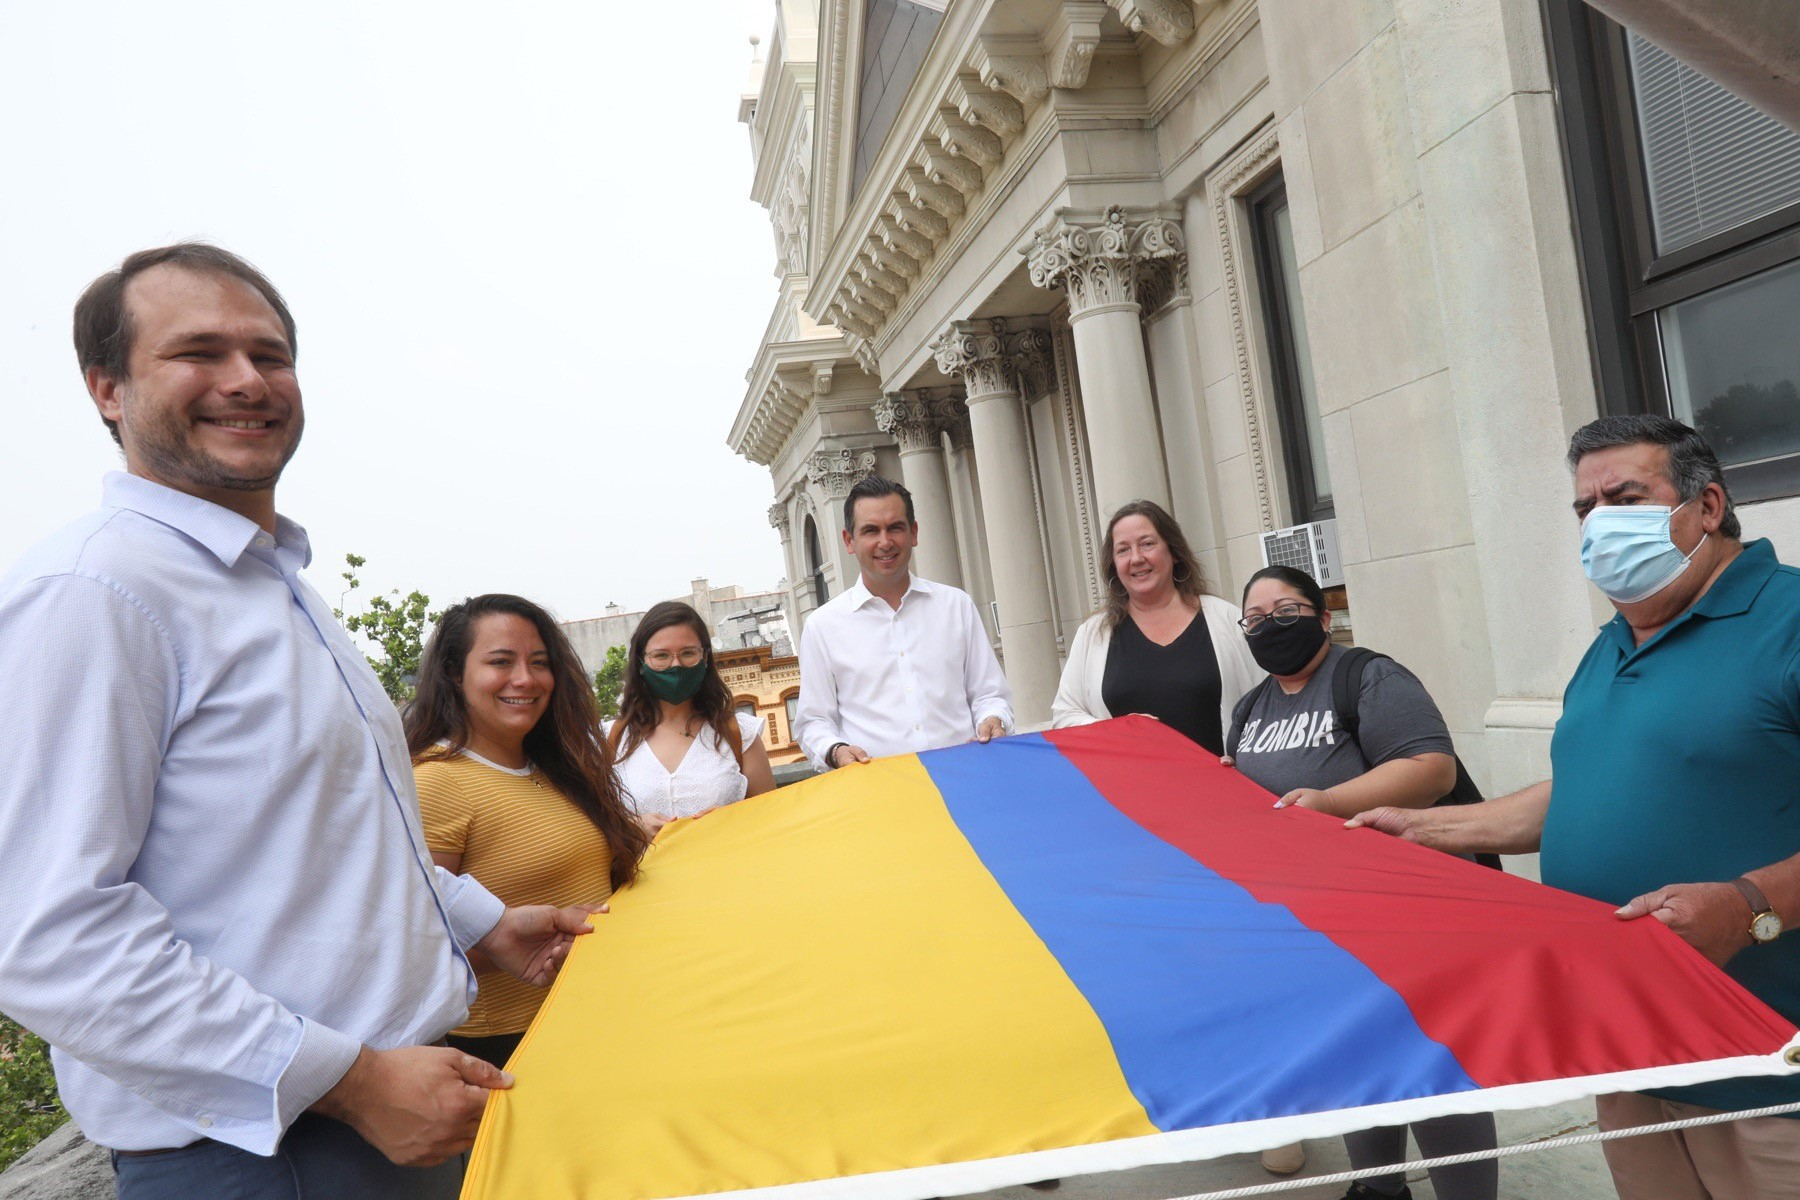 A group pf people hold the Colombian flag prior to raising. The flag consists of horizontal tricolor of yellow (double-width), blue and red with a white circle outlined in red and the coat of arms of Colombia defaced in the center.. The national flag of Colombia symbolizes Colombian independence from Spain, gained on July 20, 1810. It is a horizontal tricolor of yellow, blue and red.